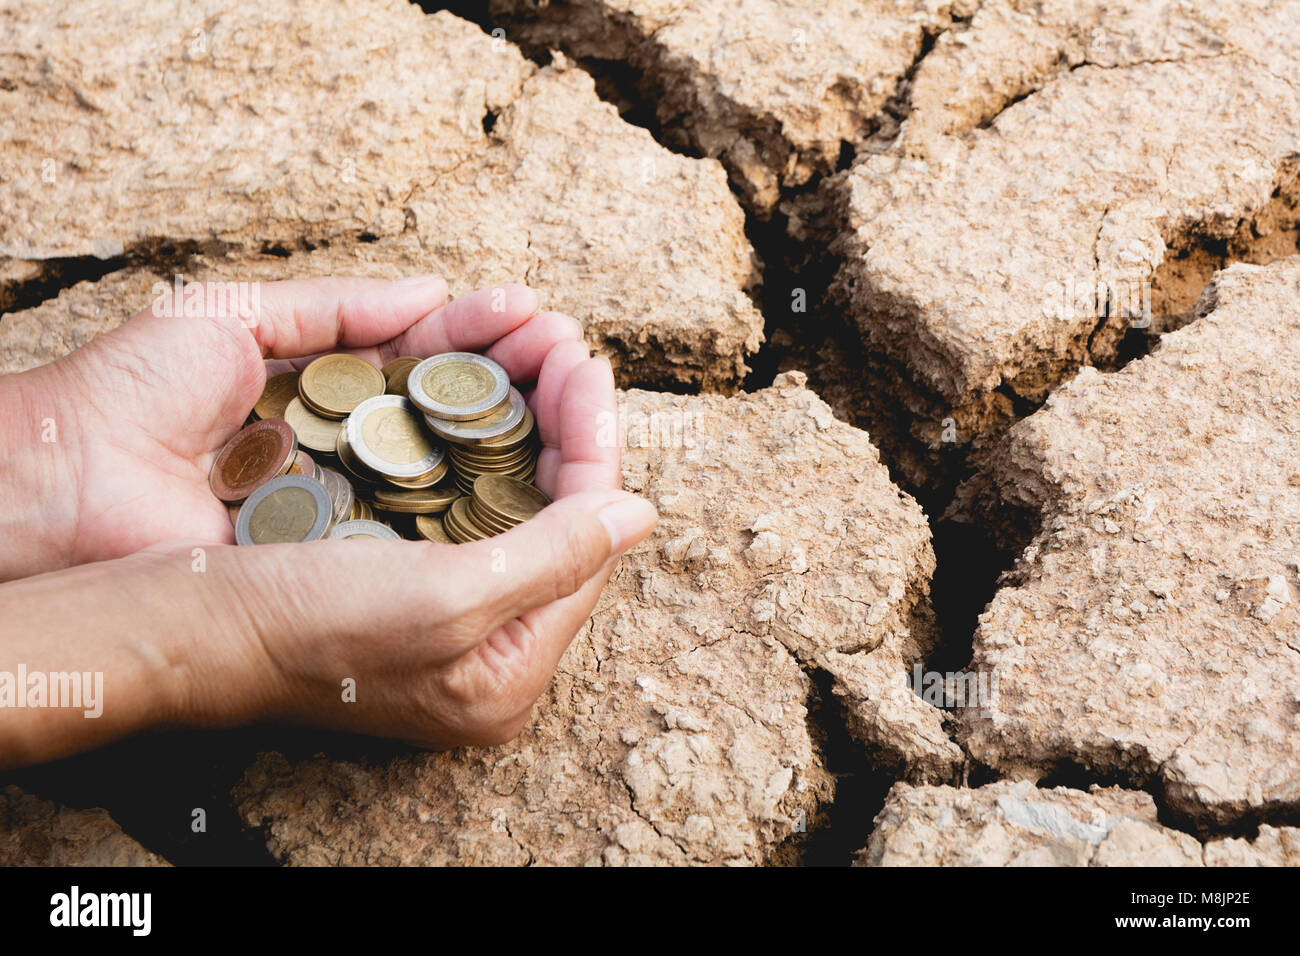 Hand holding coins money in hand on drought area background. Financial, accounting and saving concept. - Stock Image